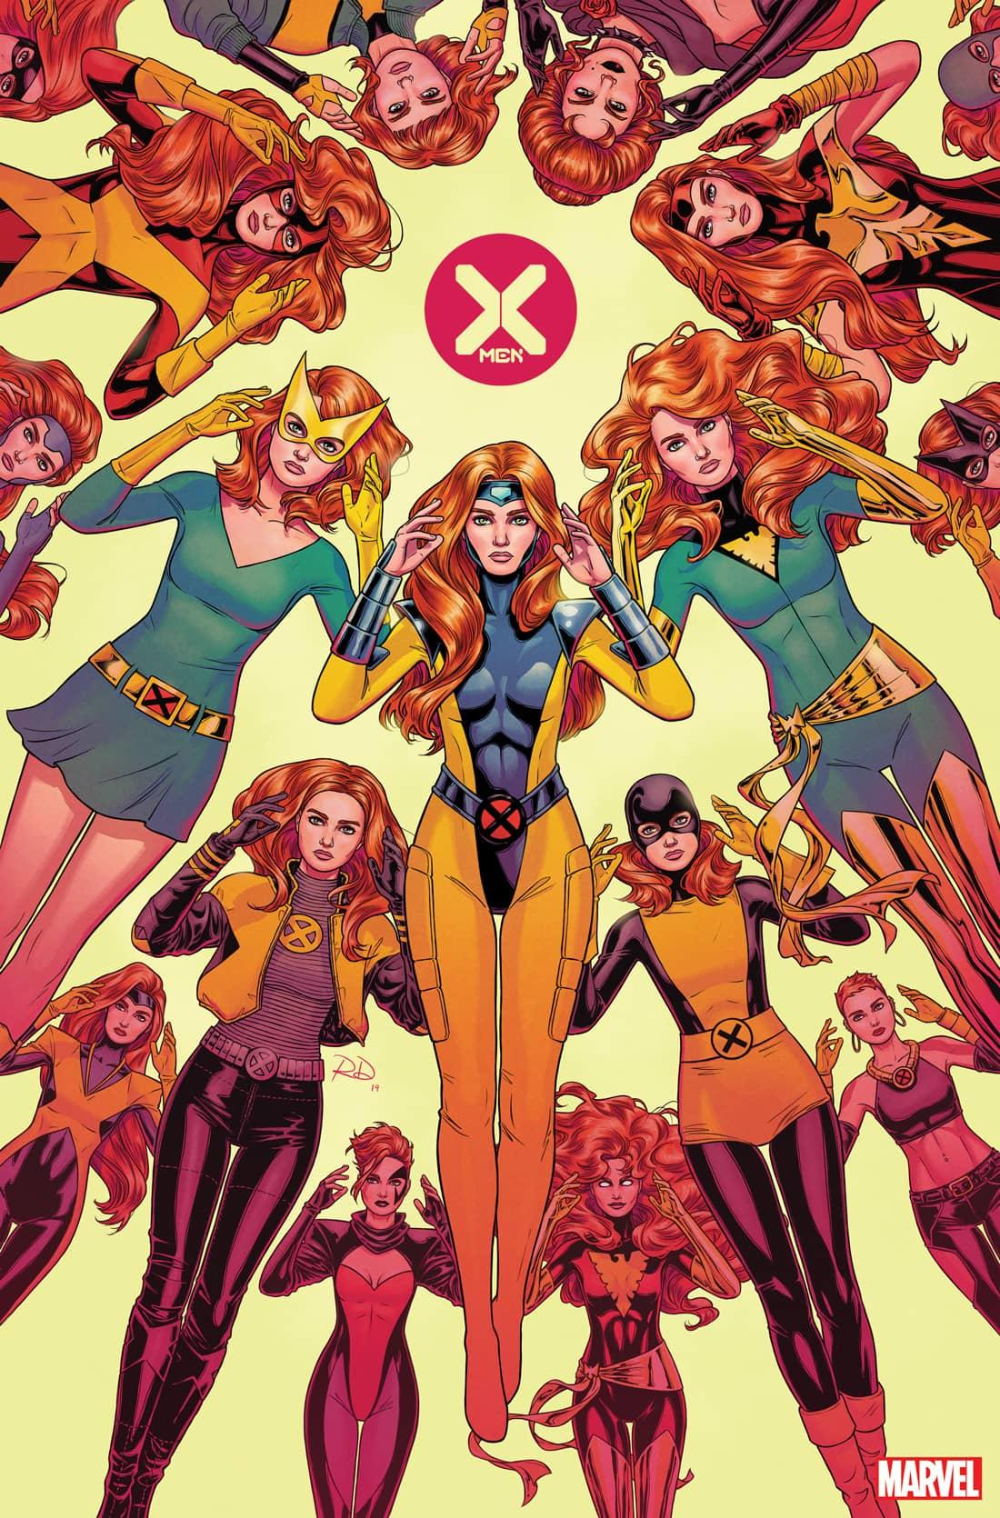 X Men 1 Launch Party Exclusive Variants And Trading Cards In 2020 Marvel Jean Grey Marvel Girls Phoenix Marvel